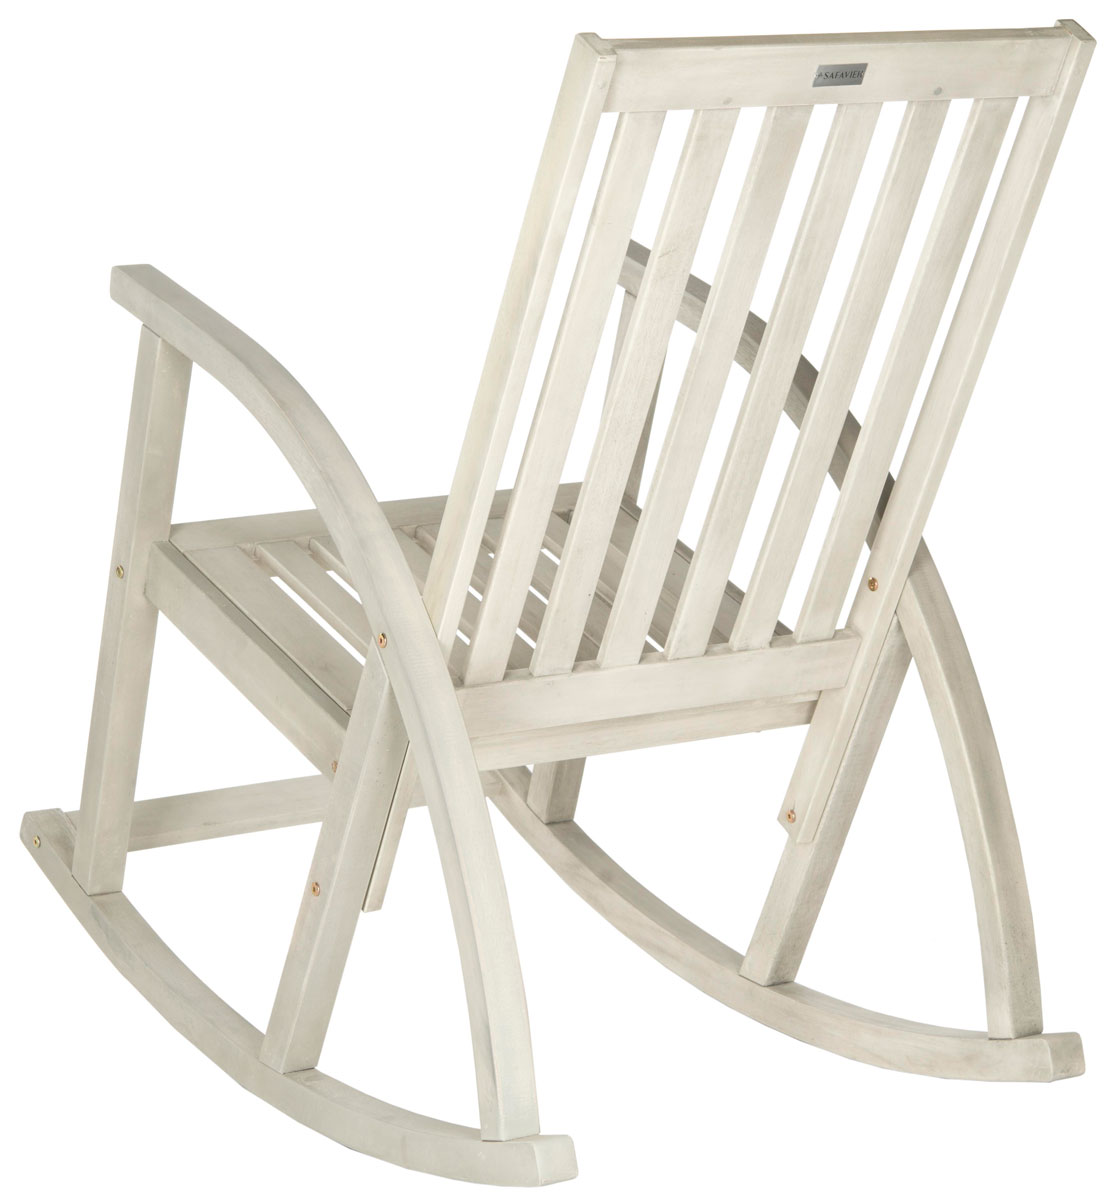 Pleasing Pat7003C Outdoor Rocking Chairs Rocking Chairs Furniture Ocoug Best Dining Table And Chair Ideas Images Ocougorg